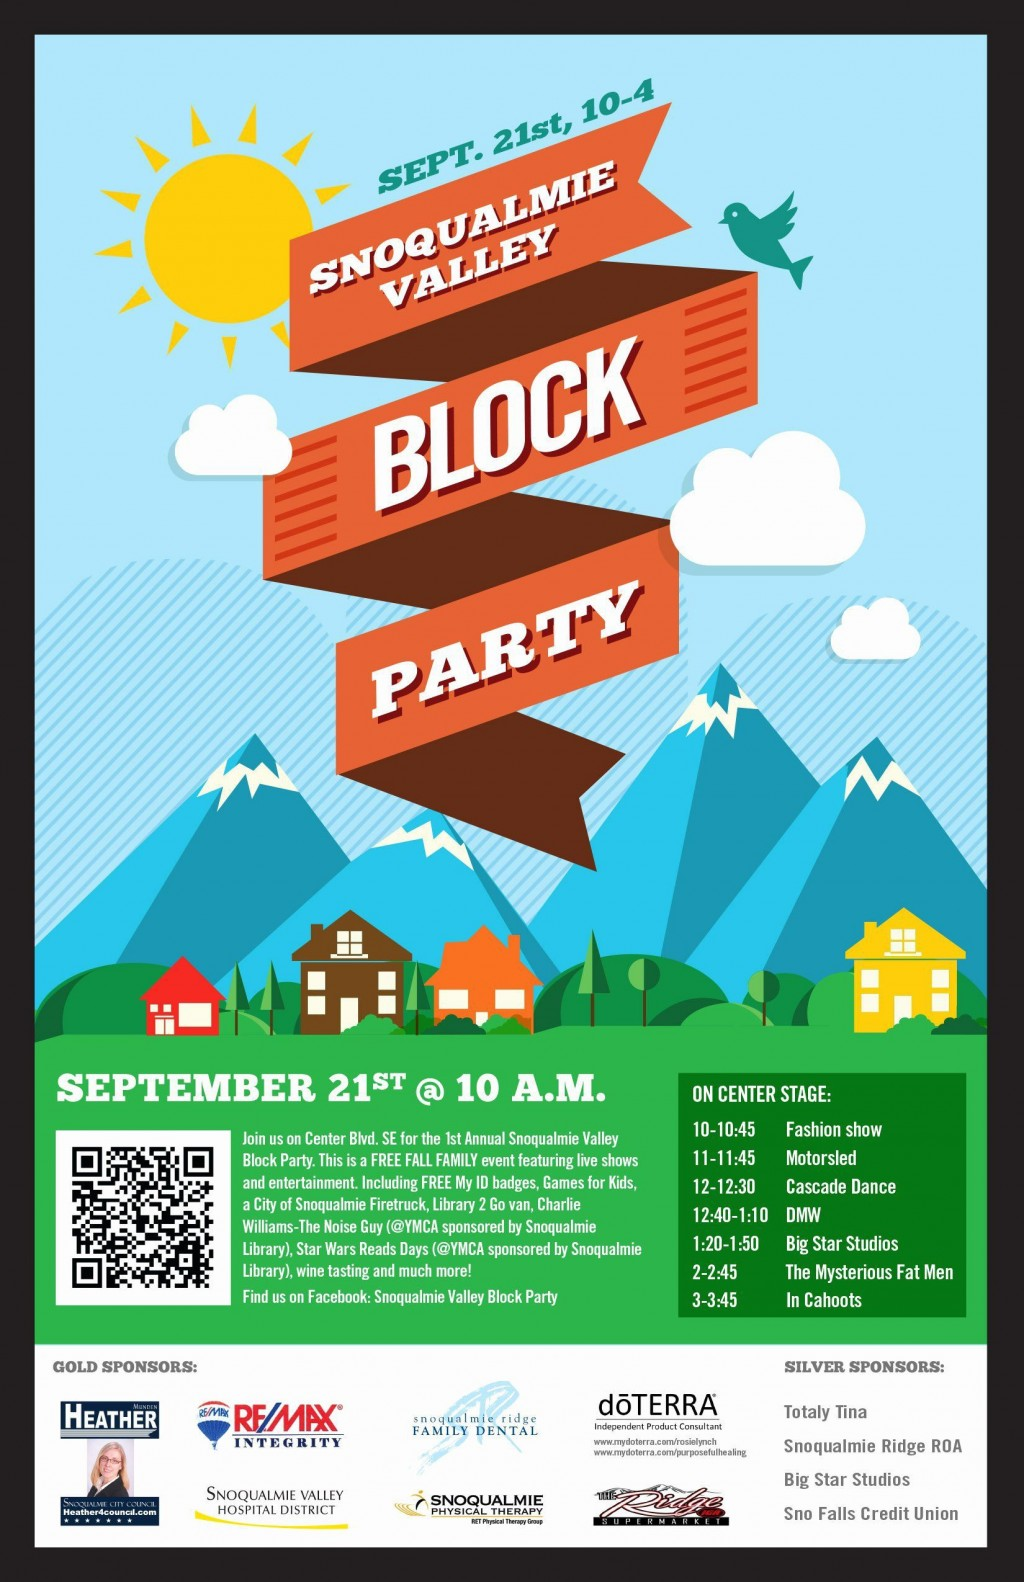 000 Magnificent Block Party Flyer Template Inspiration  Templates FreeLarge